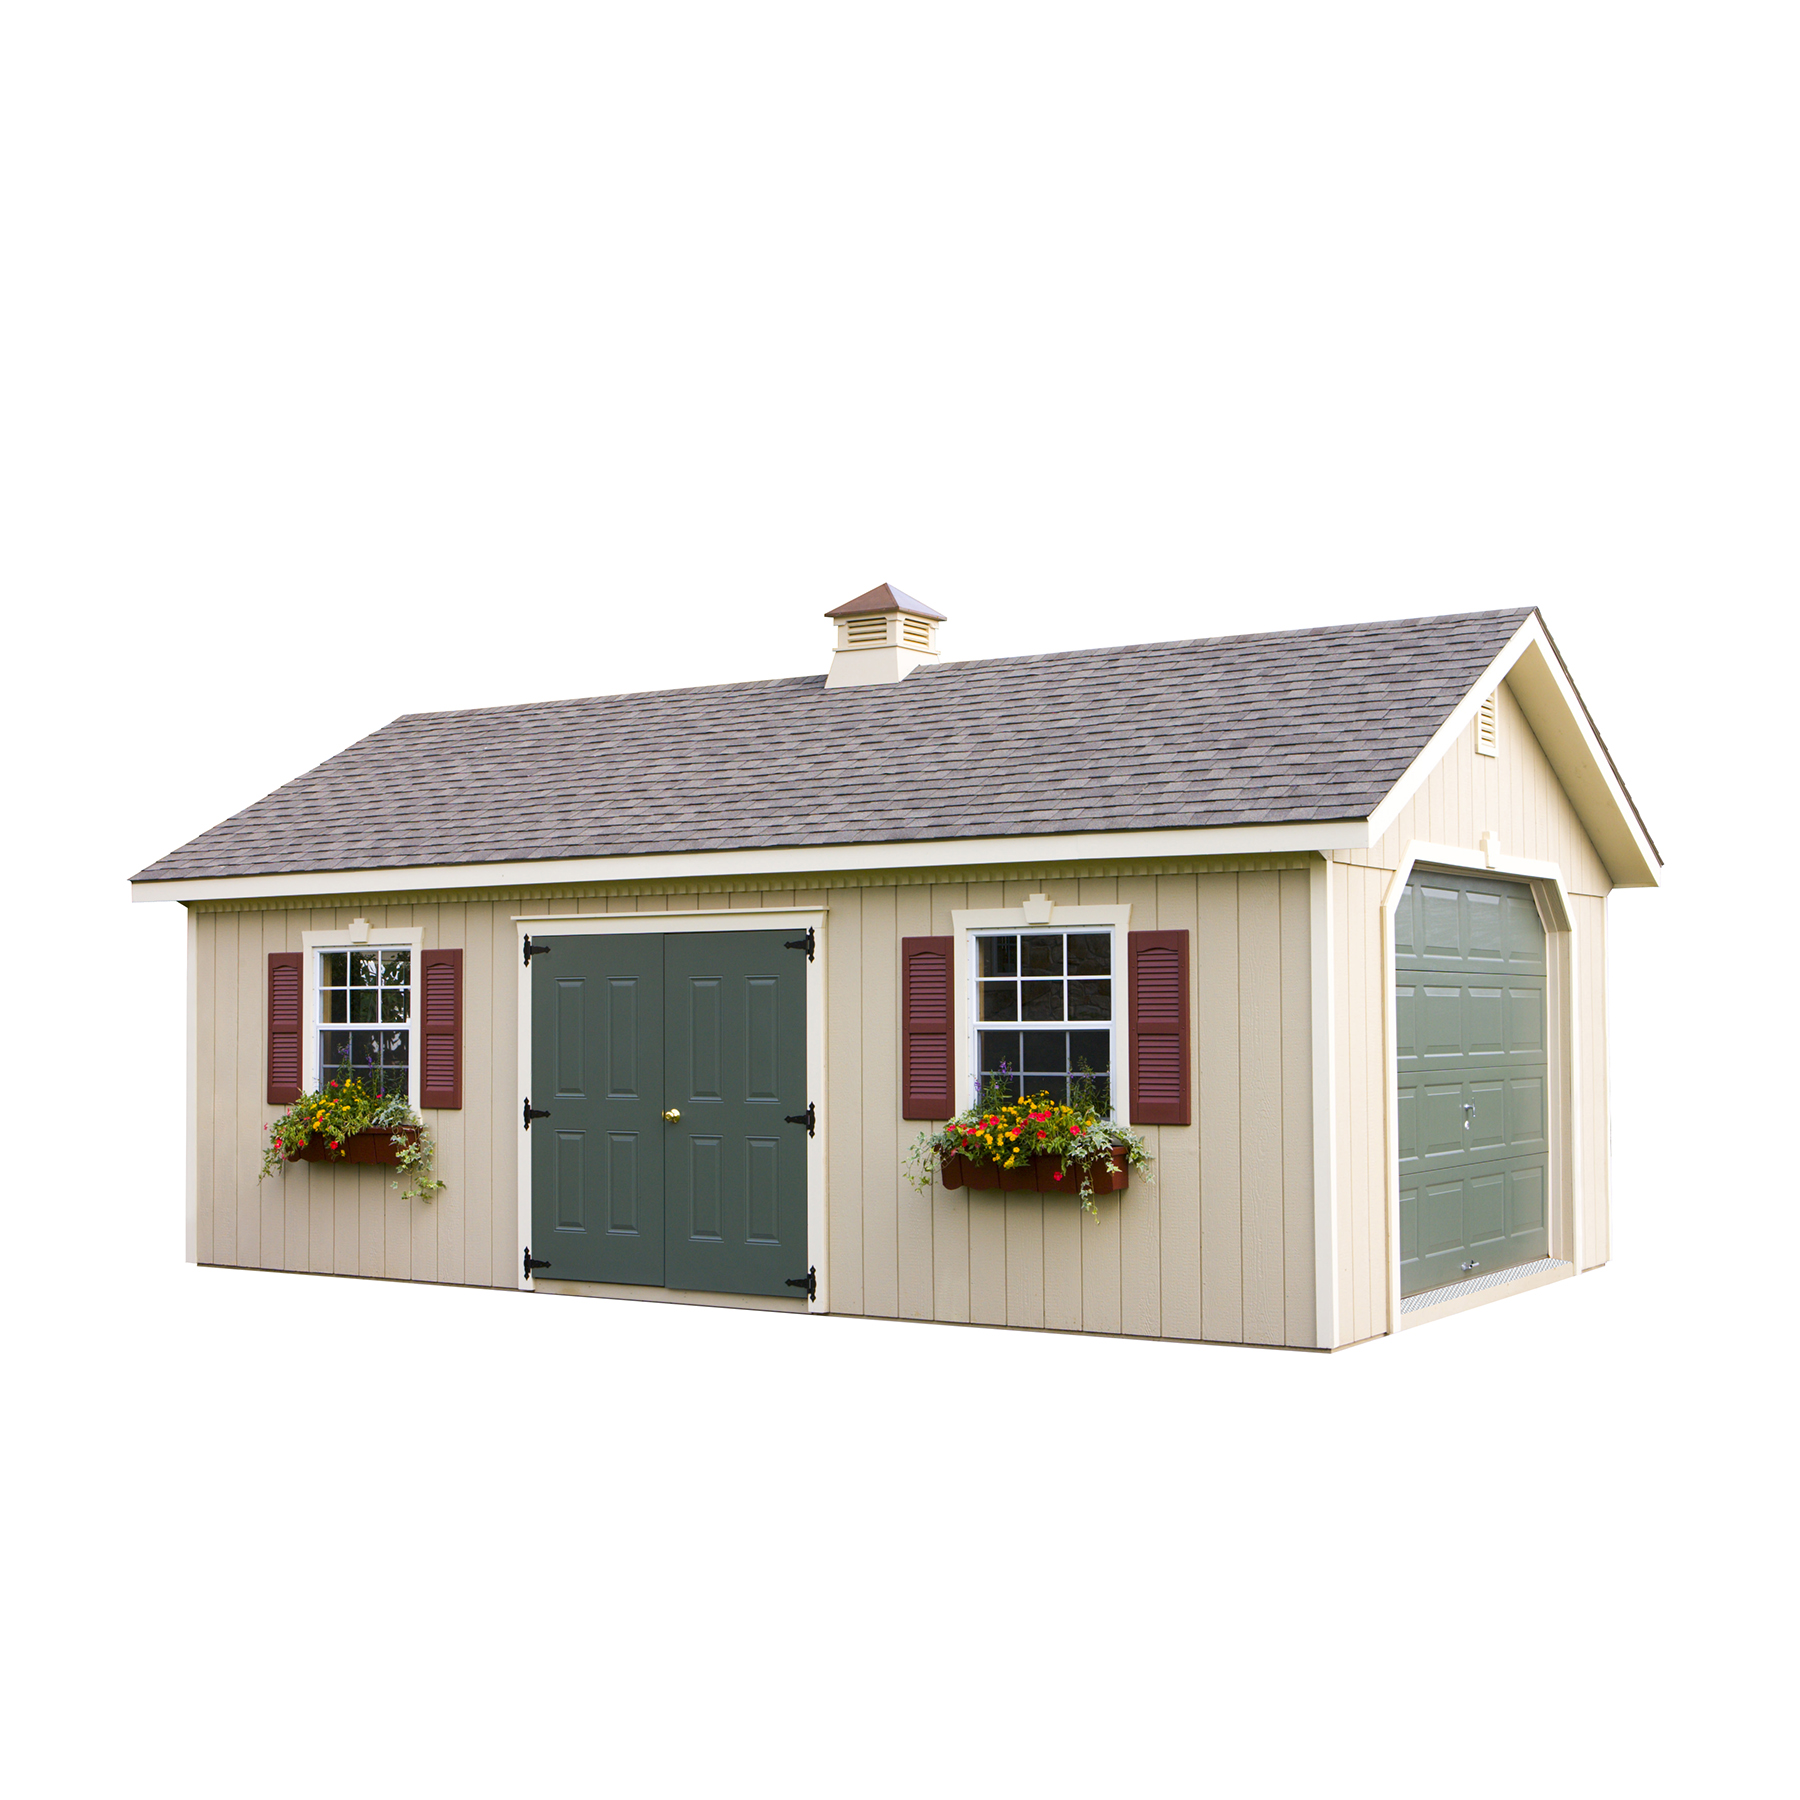 Sears Storage Sheds Images